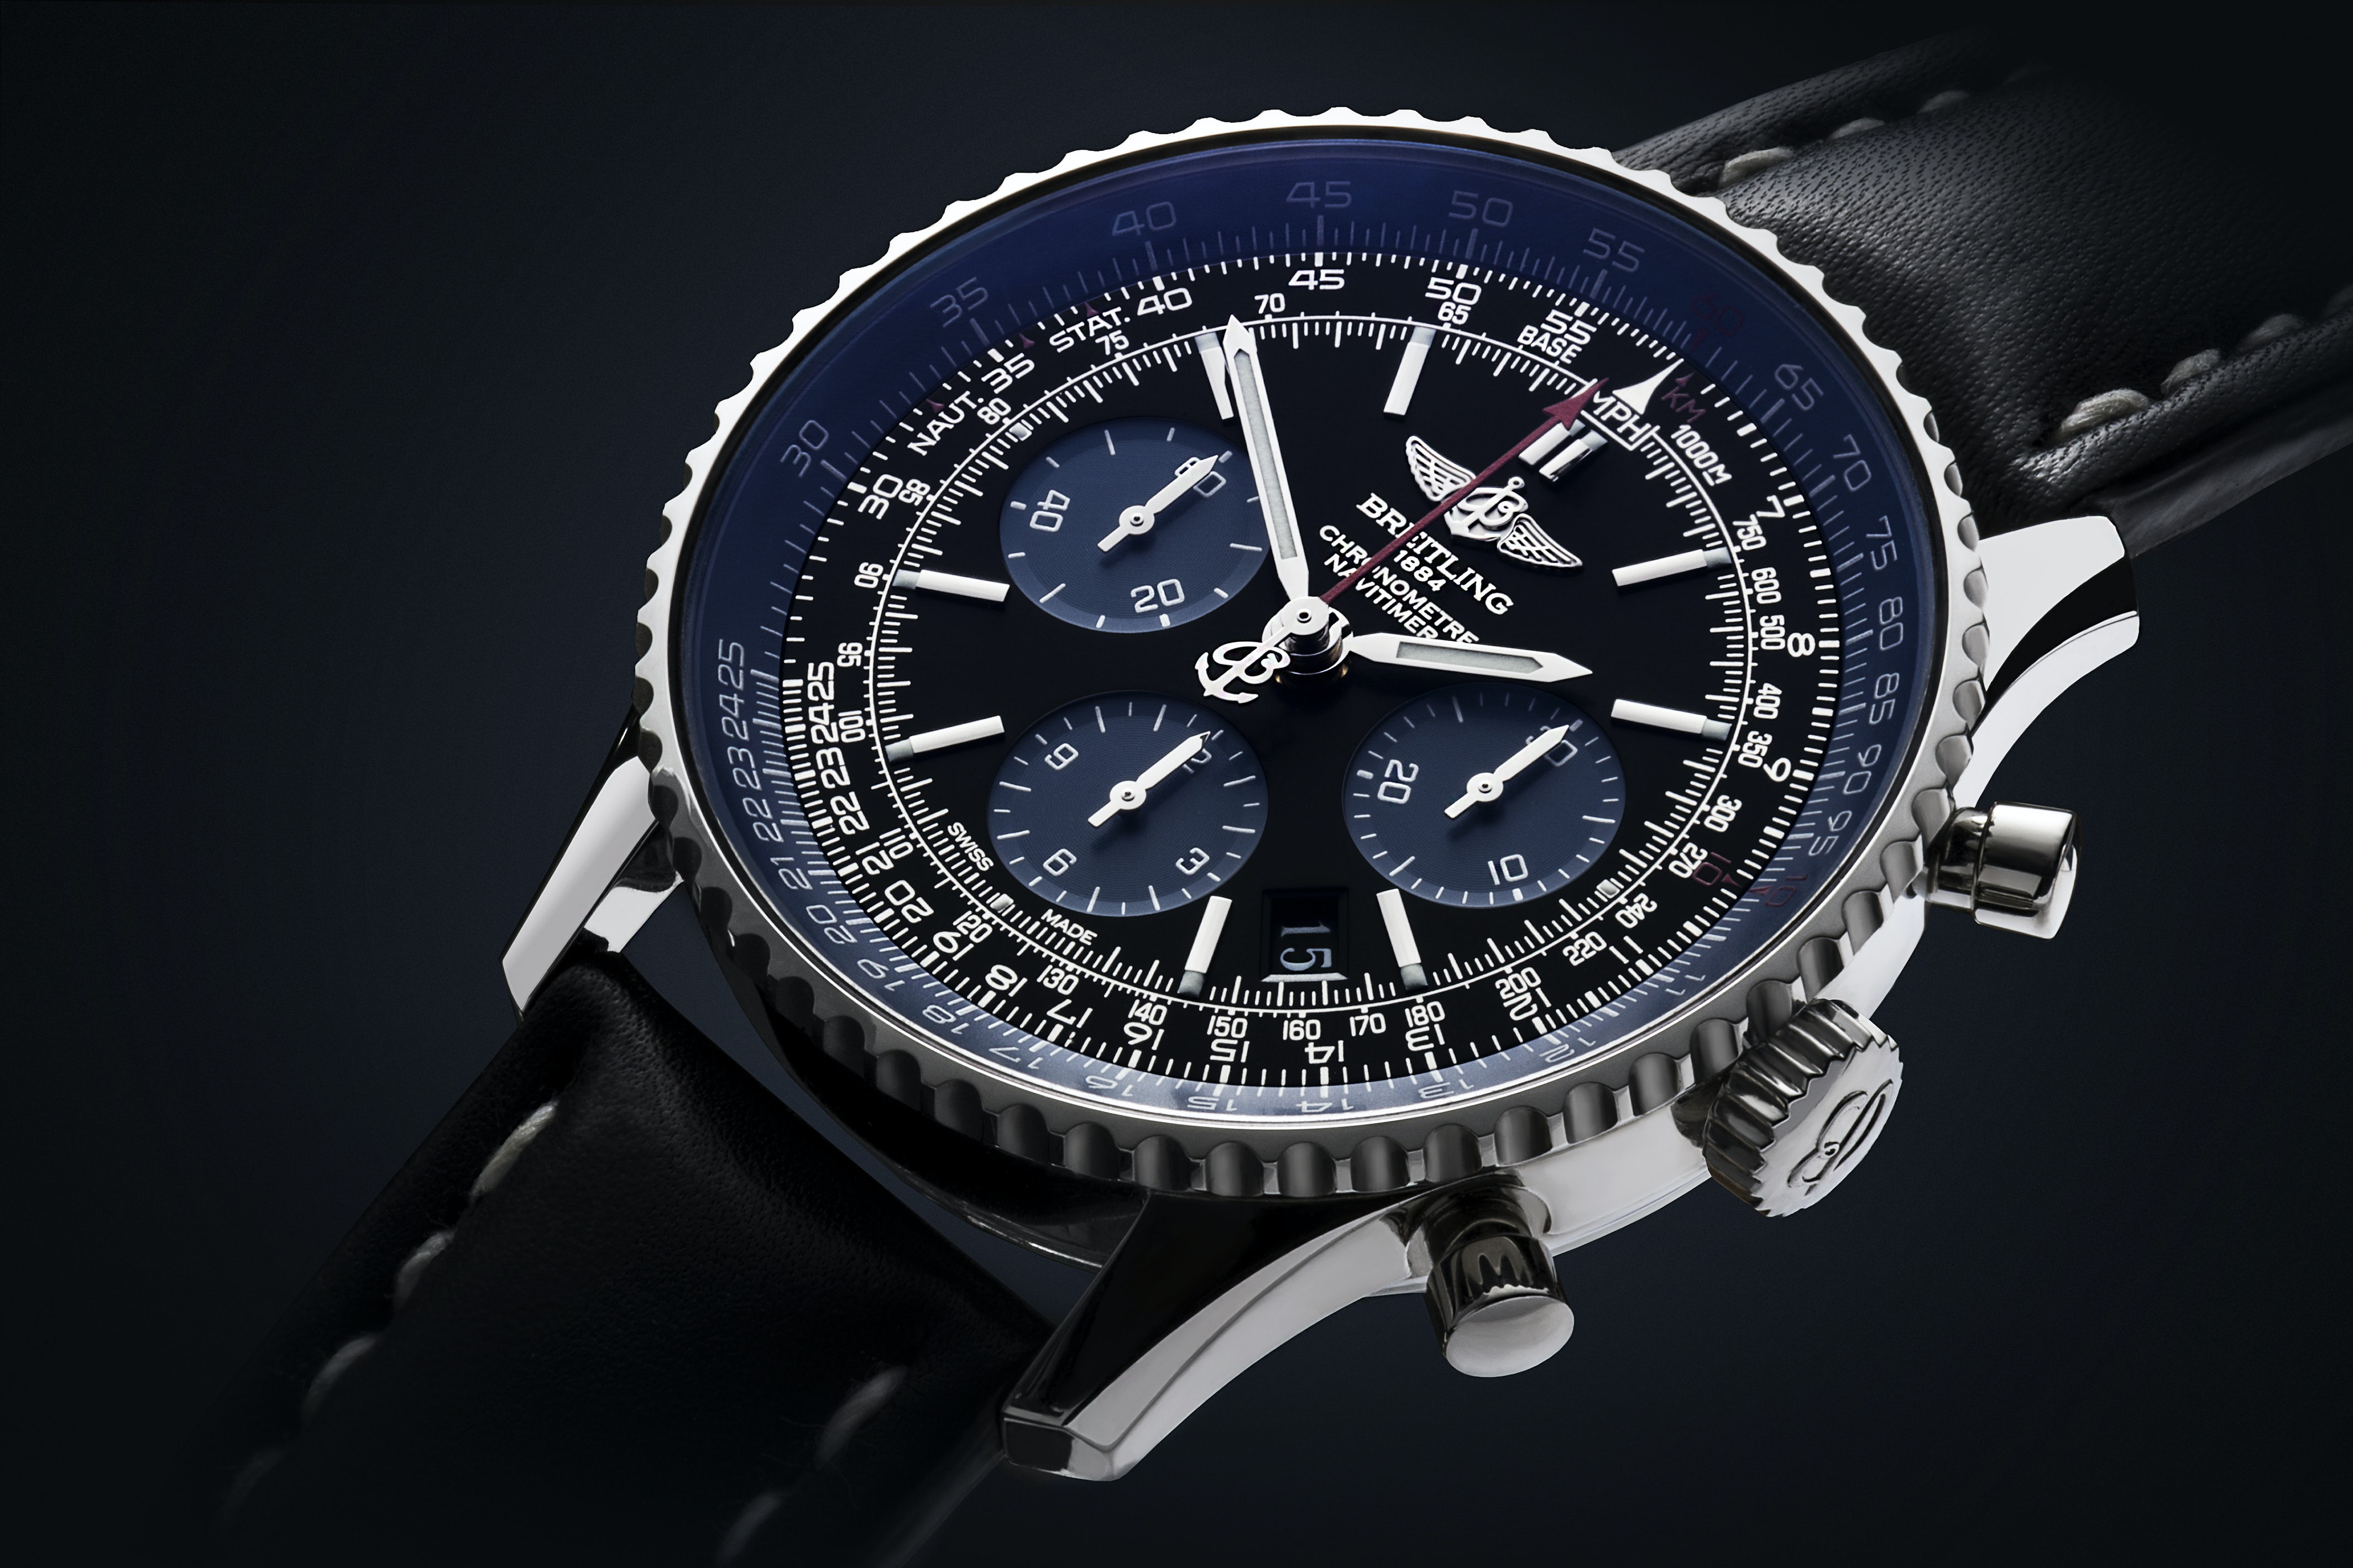 The Breitling Navitimer watch | Source: Shutterstock